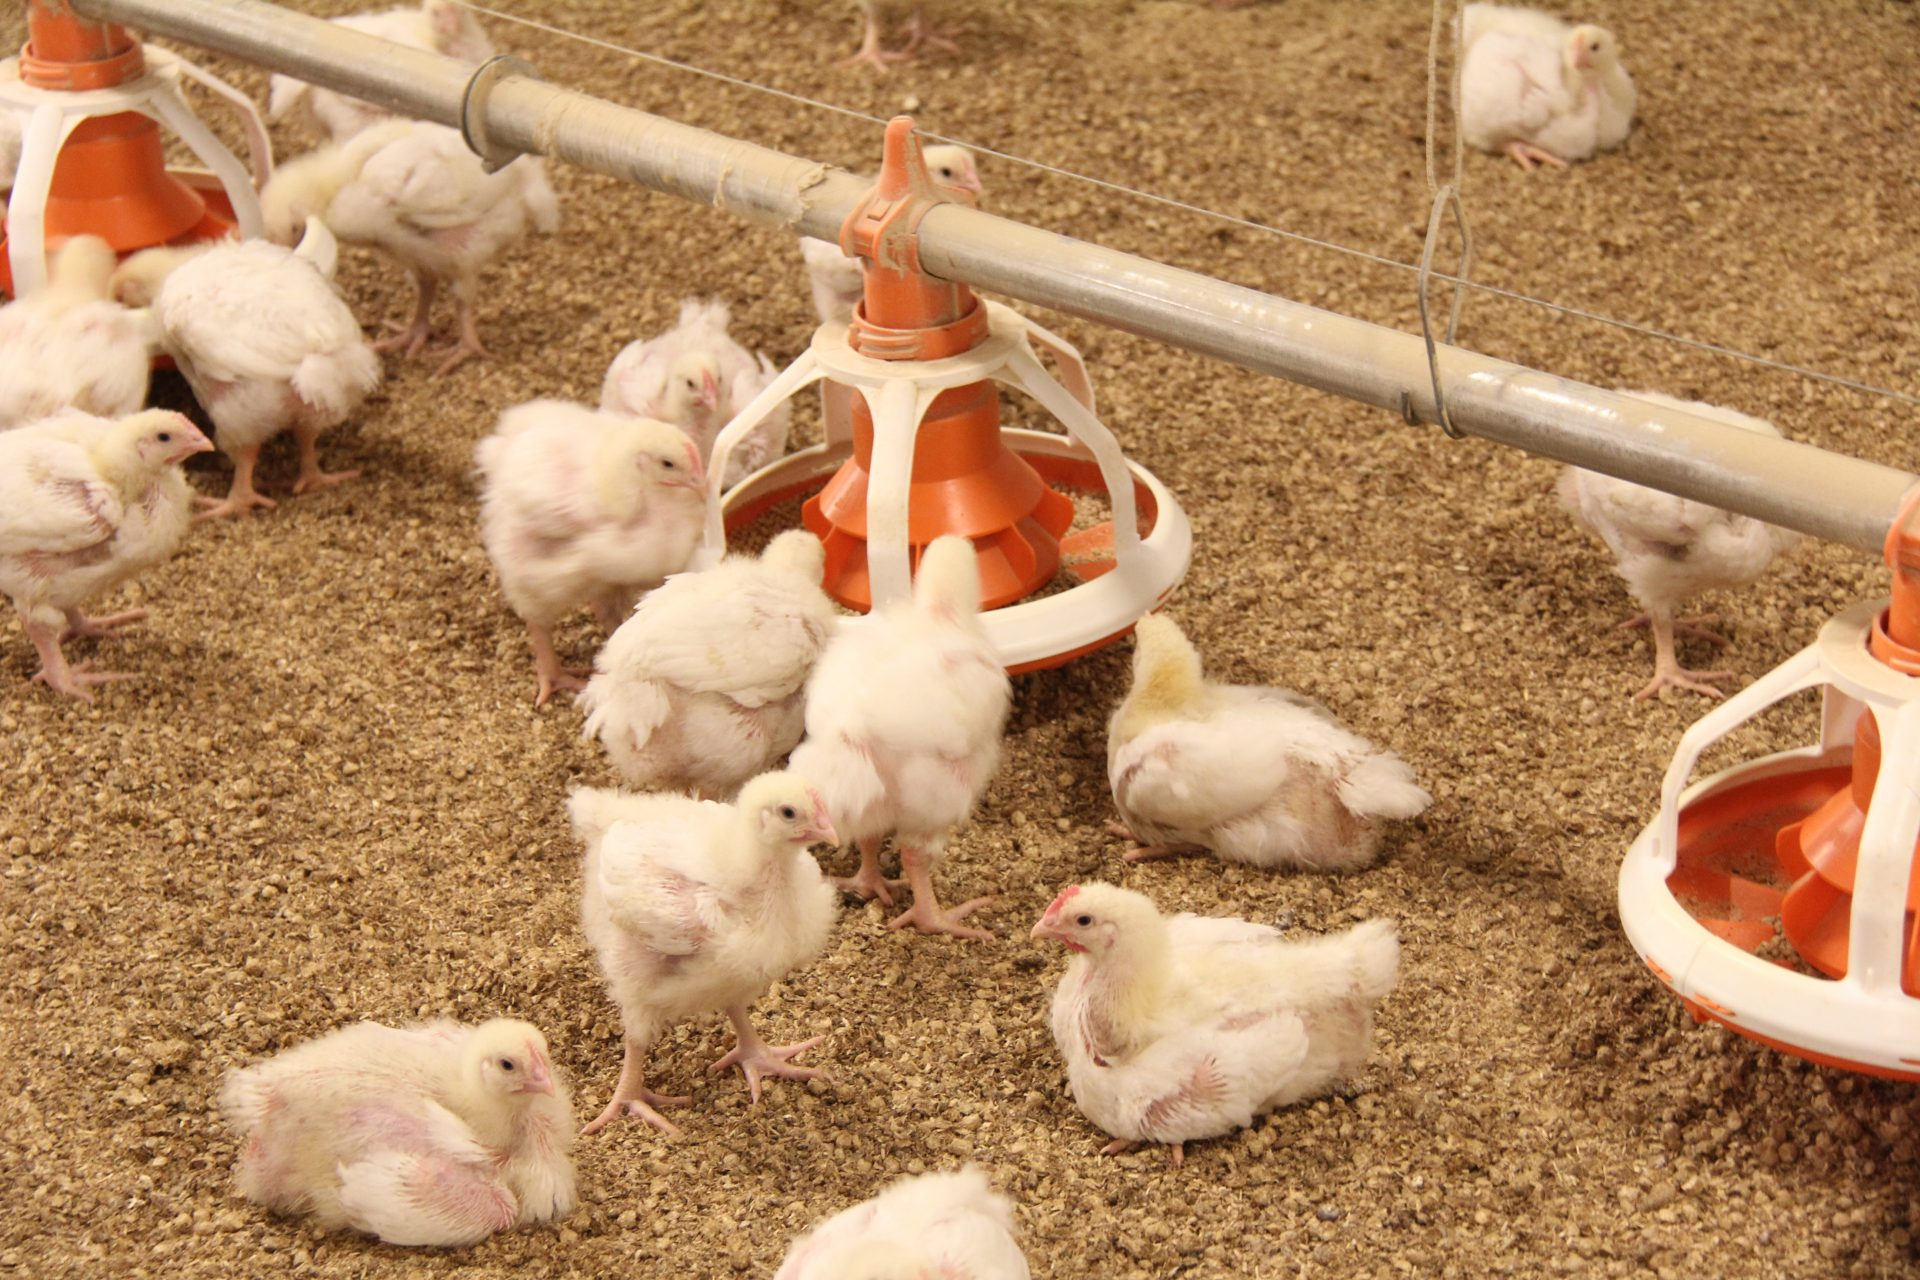 chicken meat production acmf - HD1920×1280